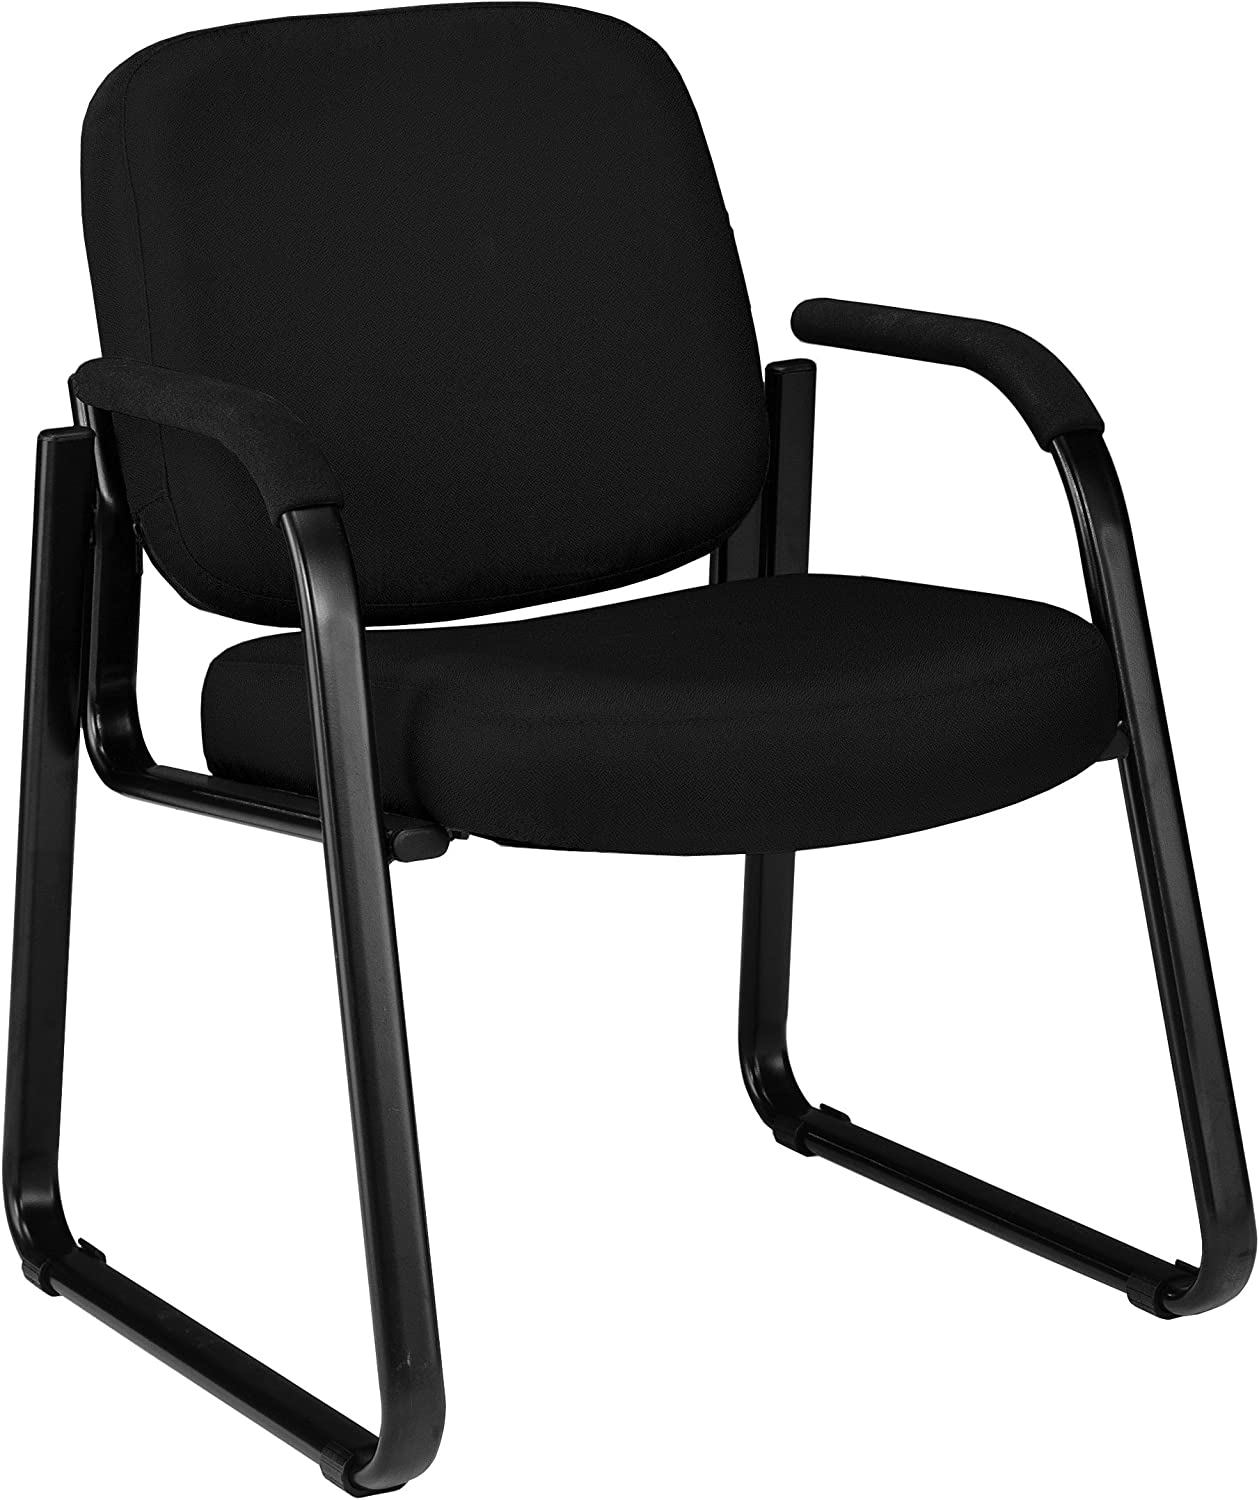 OFM 403-805 Reception Chair with Arms - Fabric Guest Chair, Black